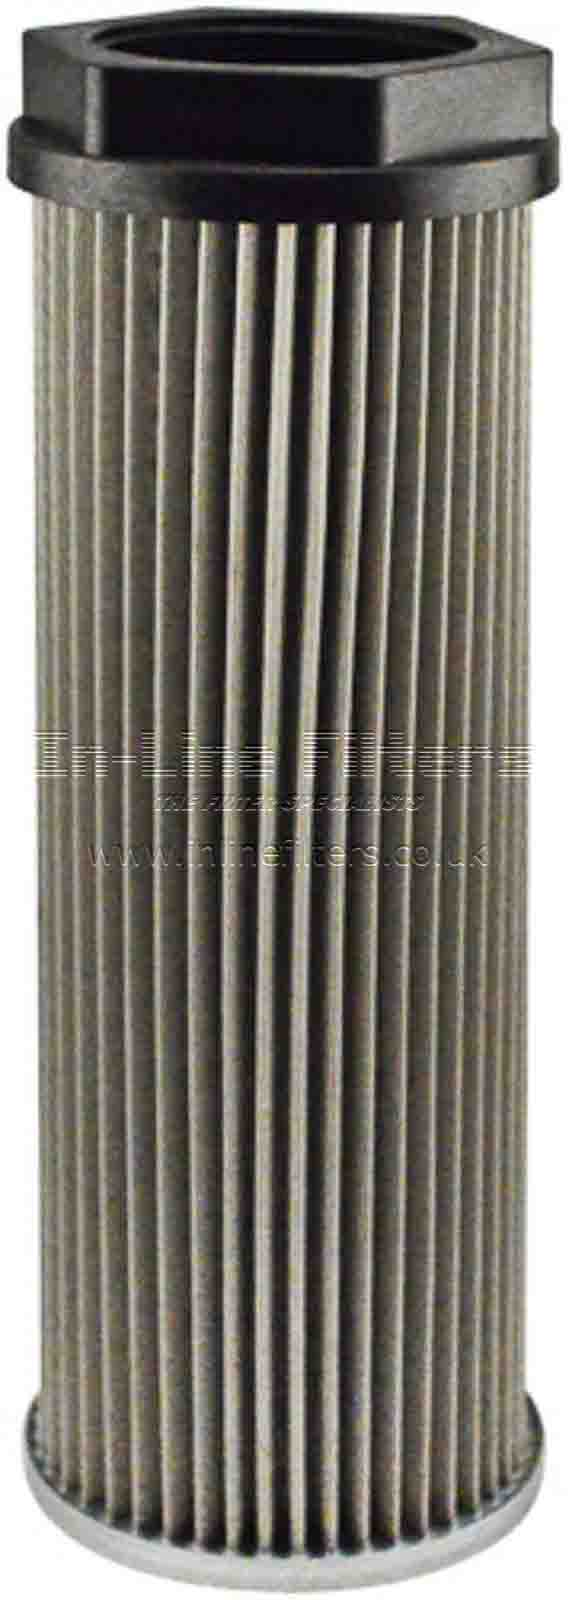 FBW-PT23179 FILTER-Hydraulic(Brand Specific-Baldwin PT23179) - Click Image to Close